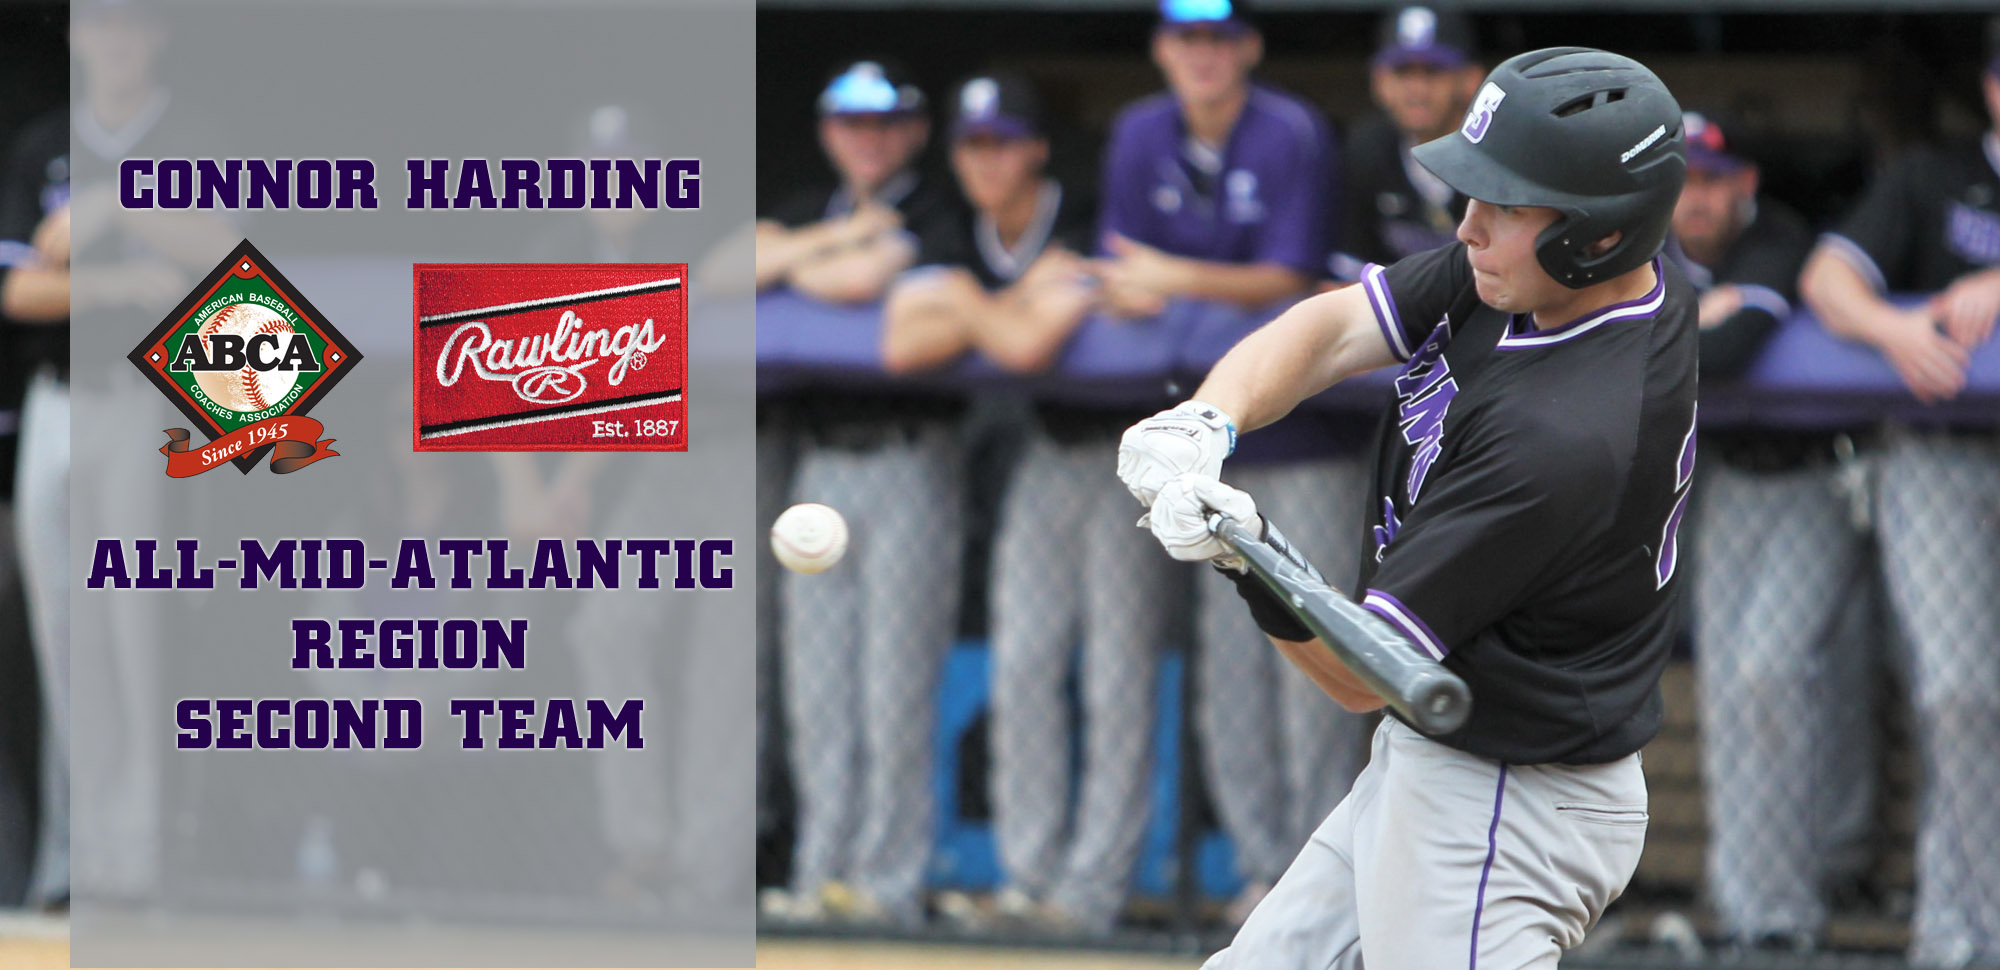 Sophomore outfielder Connor Harding has been named to the ABCA/Rawlings All-Mid-Atlantic Region Second Team. © Photo by Timothy R. Dougherty / doubleeaglephotography.com